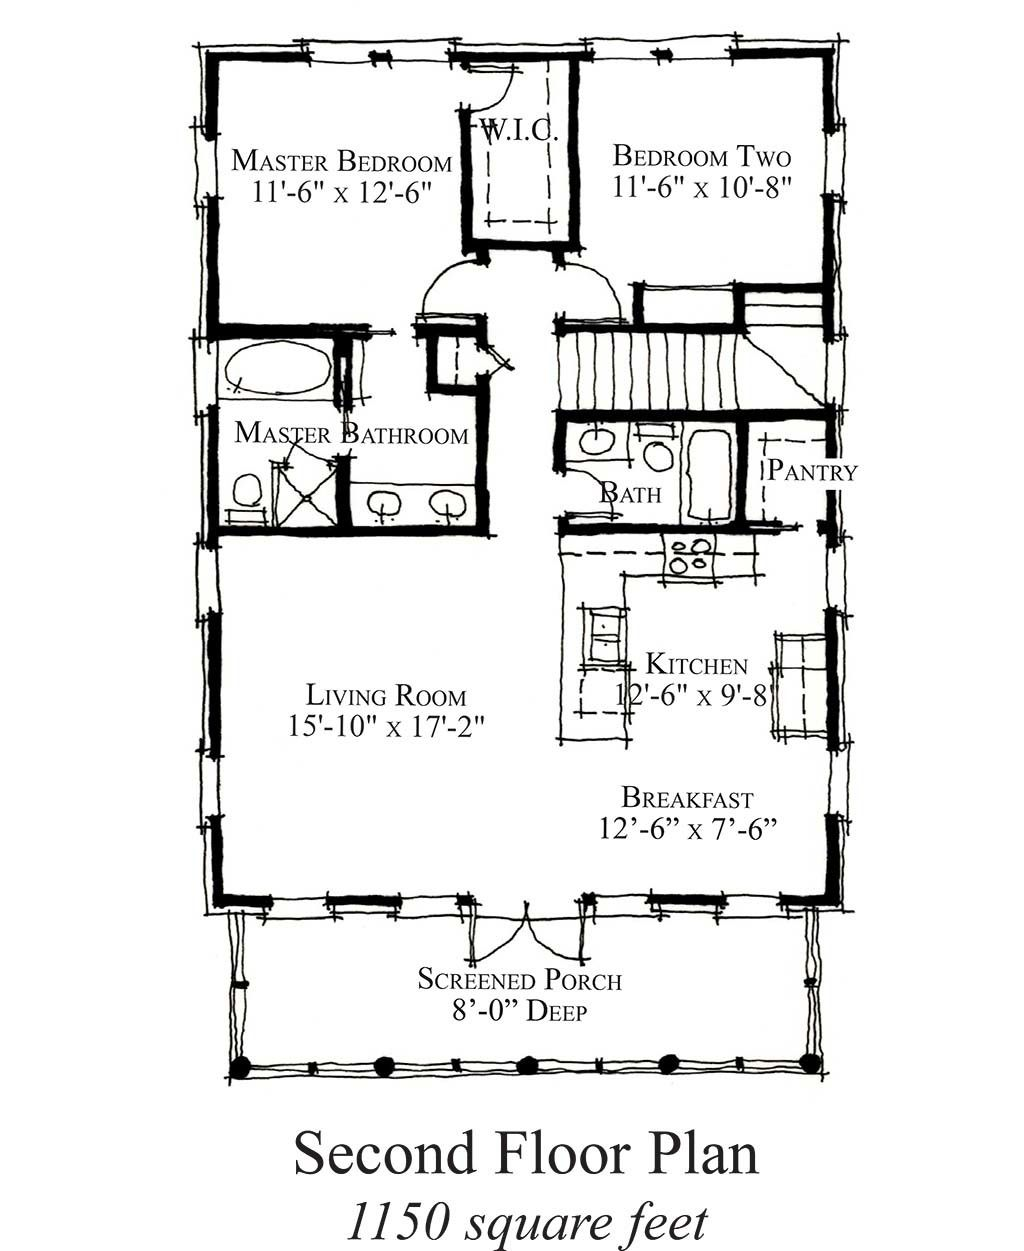 Bungalow Style House Plan 3 Beds 2 5 Baths 1523 Sq Ft Plan 79 213 Cabin Floor Plans Bungalow Style House Plans Barndominium Floor Plans